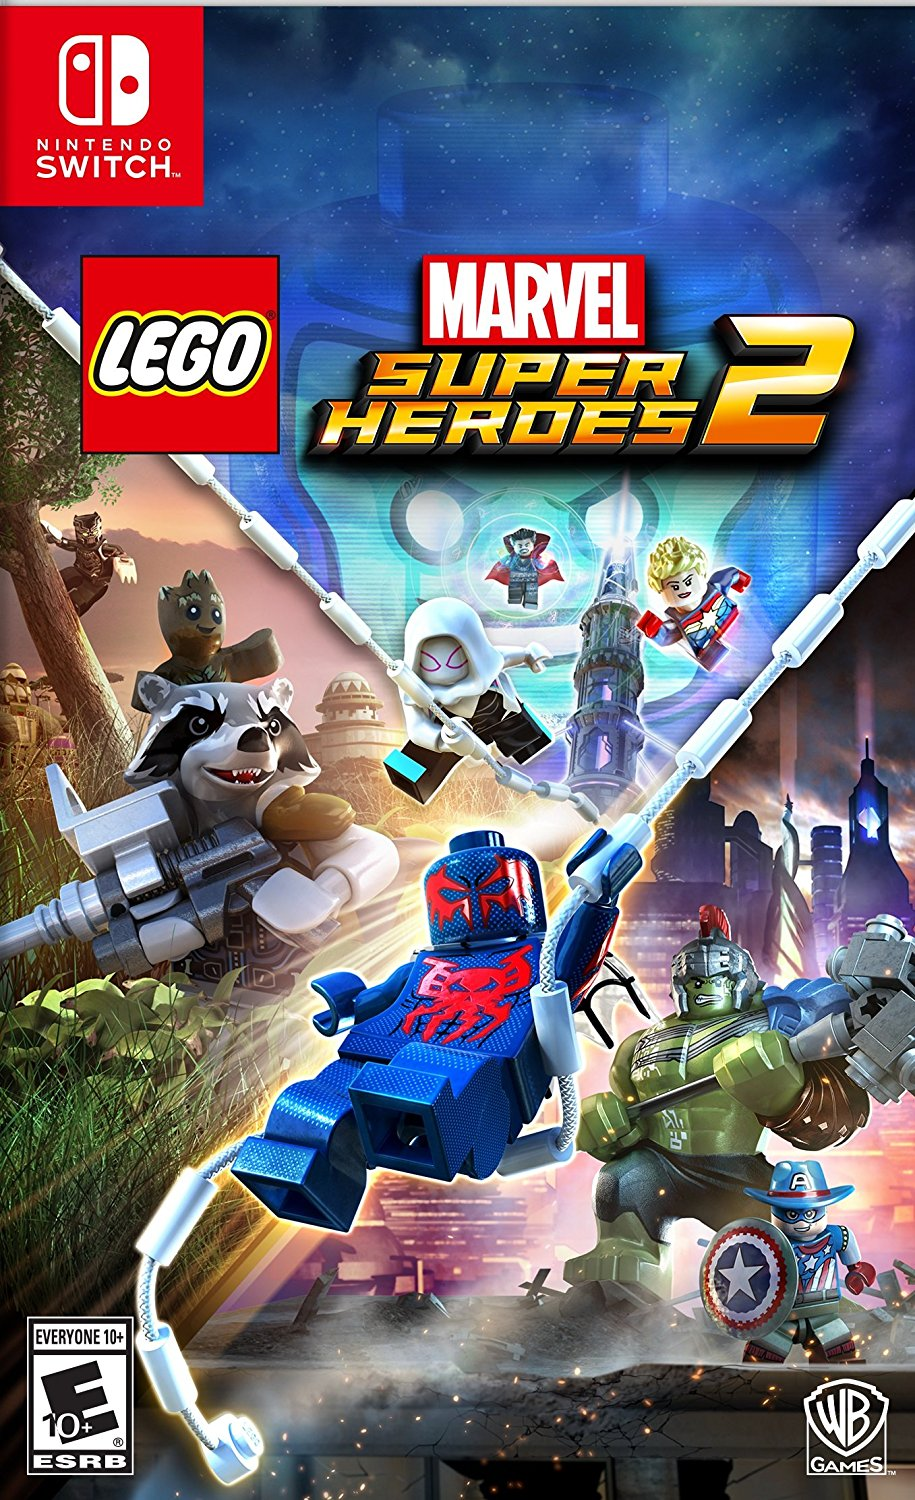 New Games: LEGO MARVEL SUPER HEROES 2 (PC, PS4, Xbox One ... |Lego Marvel Superheroes 2